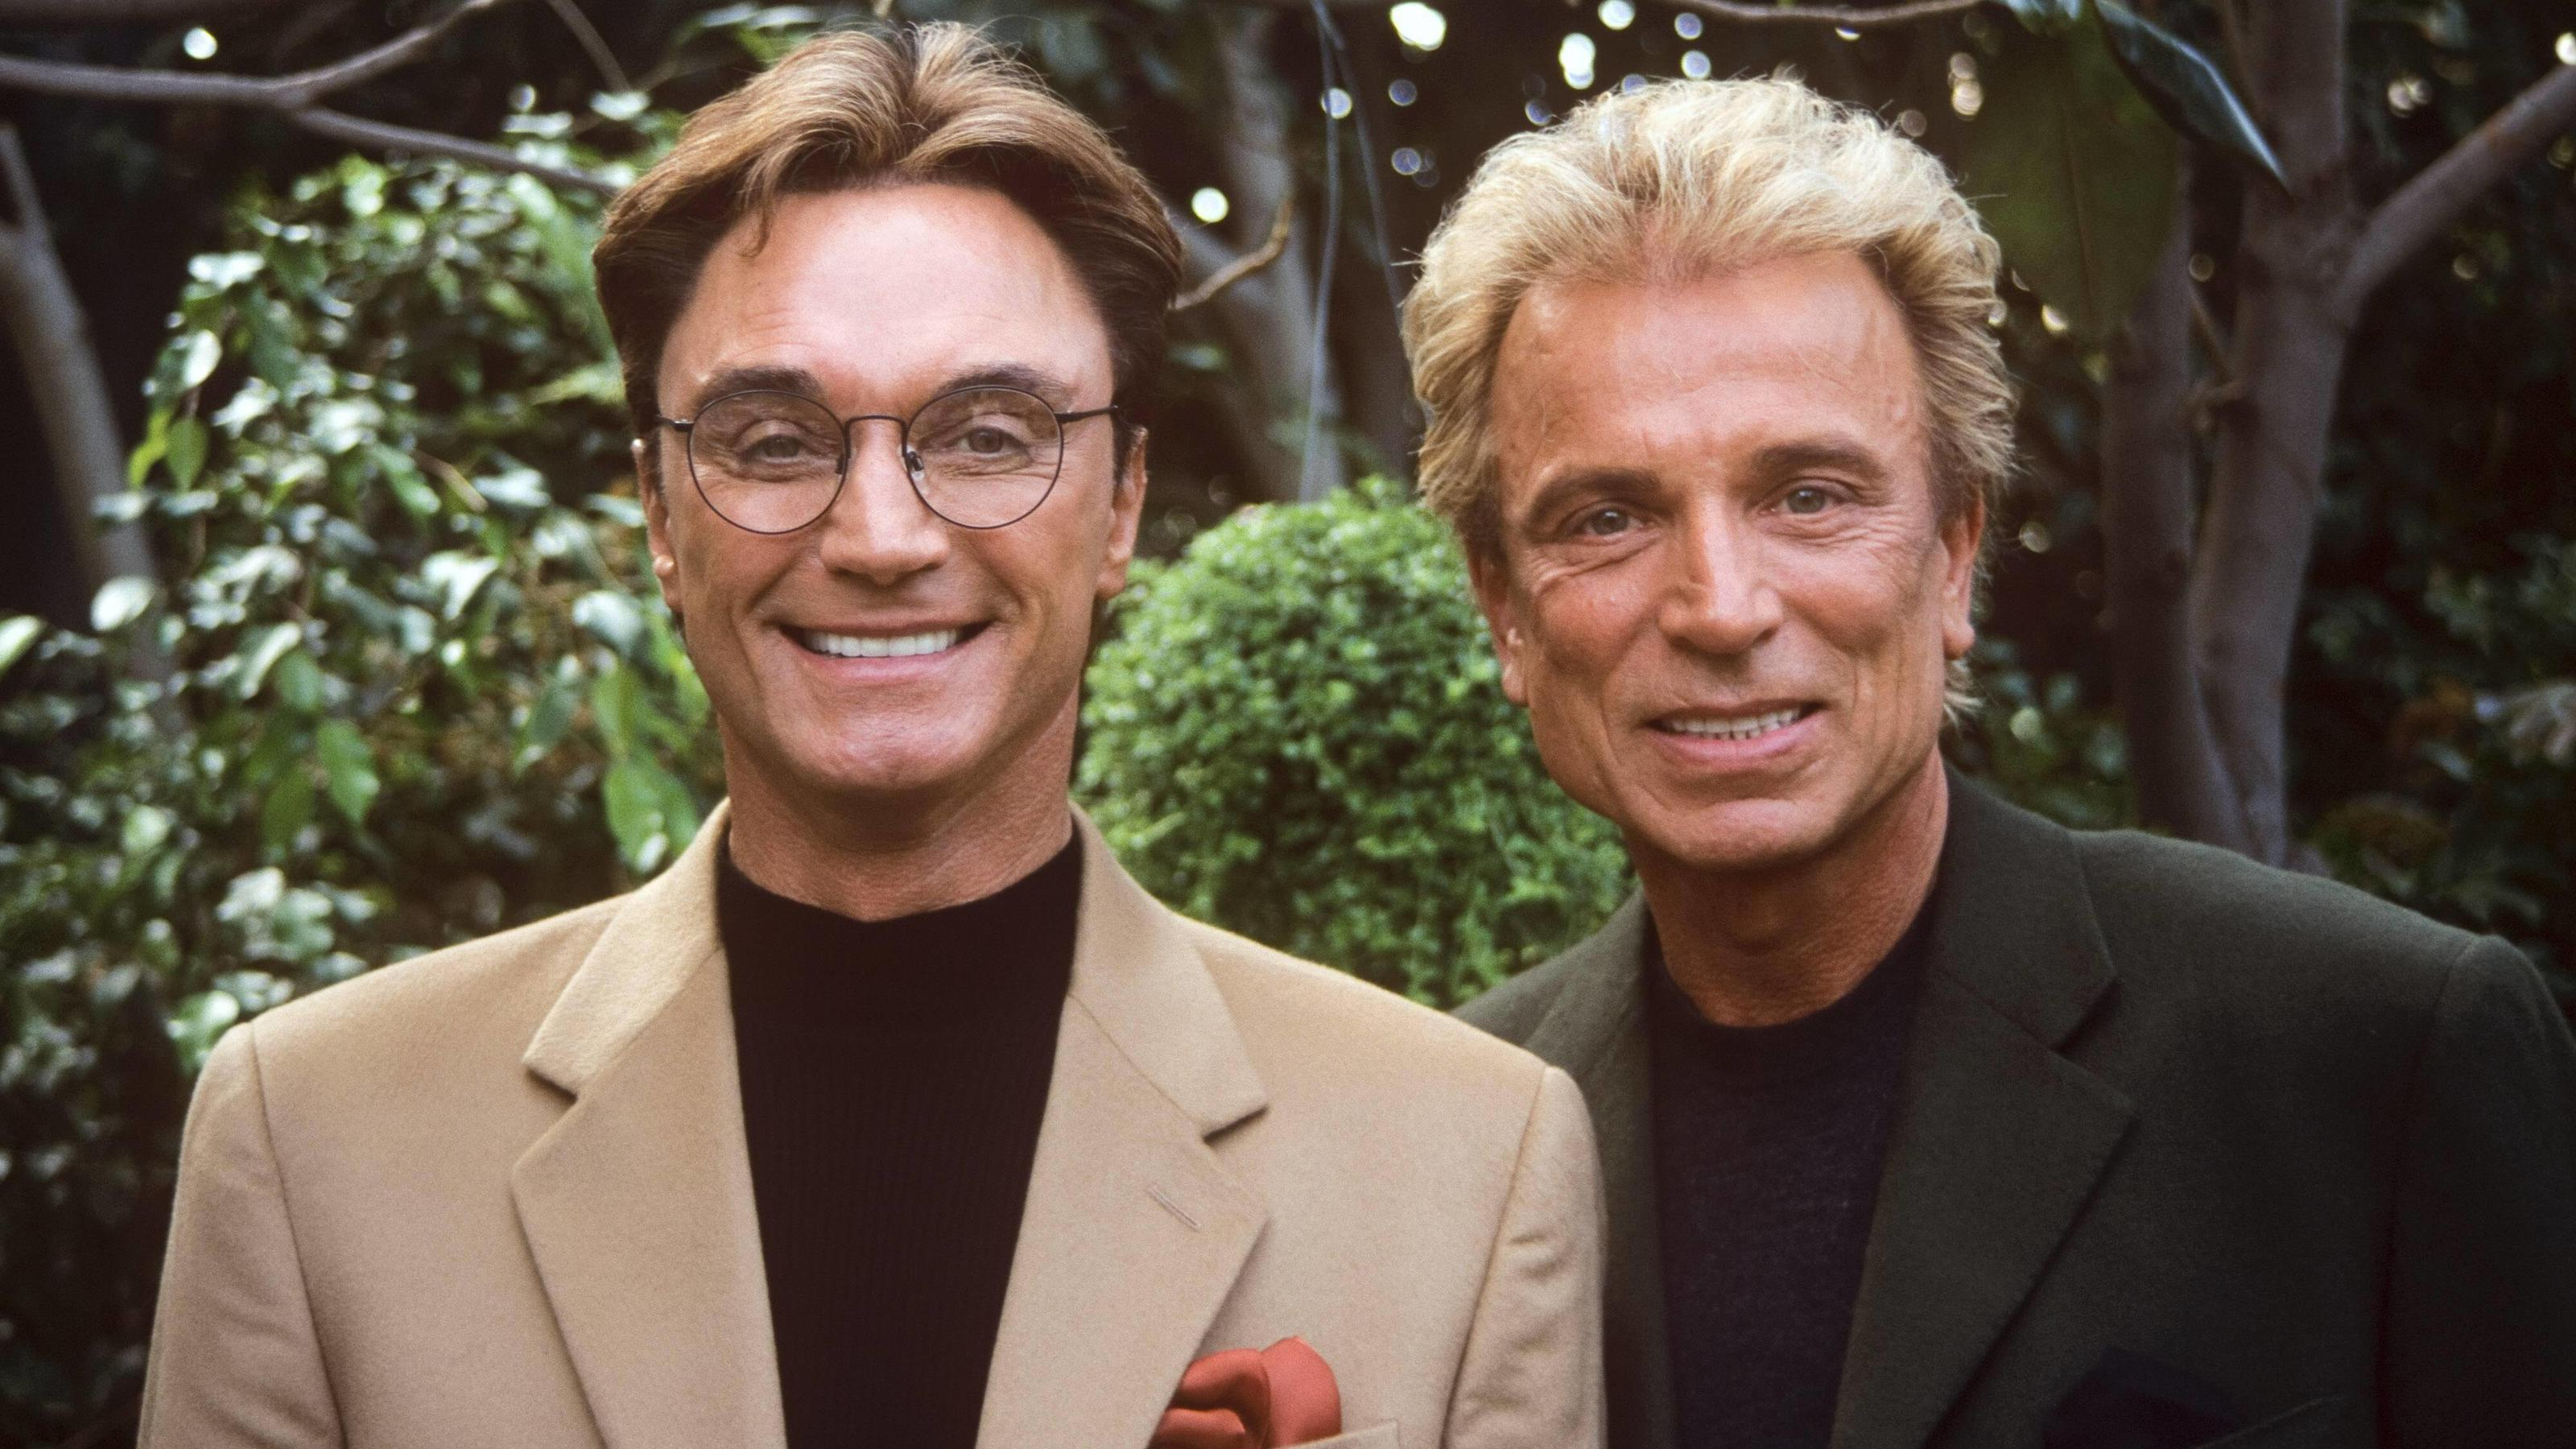 Siegfried & Roy Siegfried Fischbacher and Roy Horn circa 2000. Reproduction by American tabloids is absolutely forbidden. Beverly Hills CA United States PUBLICATIONxINxGERxSUIxAUTxONLY Copyright: xJeanxCummingsx 31315_158JRC